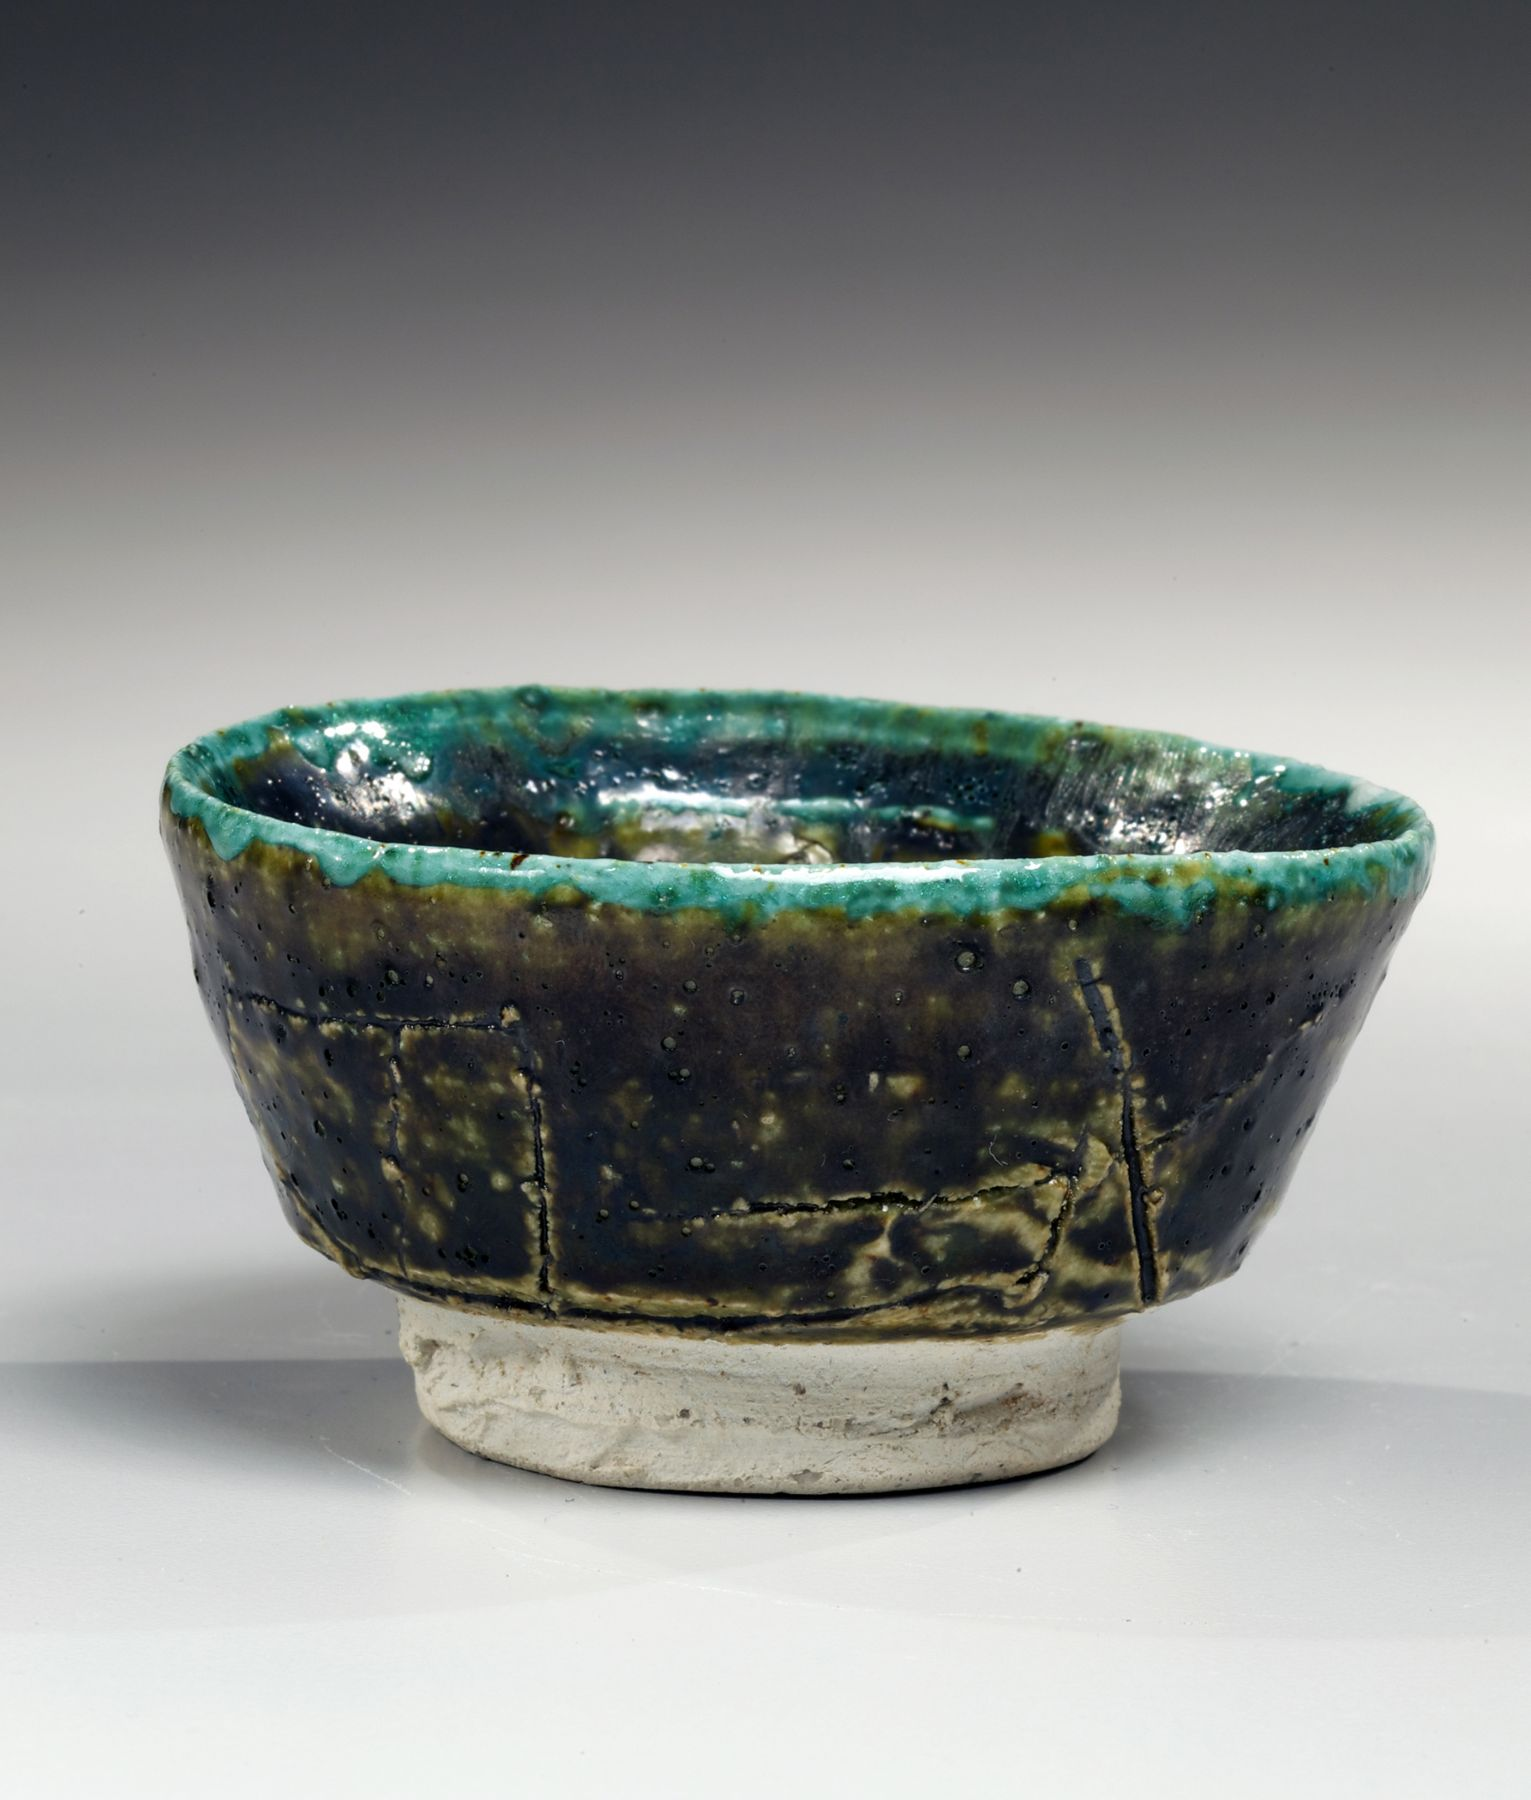 Koie, Ryoji, Koie Ryoji, contemporary, ceramics, Japanese, pottery, clay, blue, green, brown, oribe, glaze, low, sake, cup, guinomi, incised, design, 1985, stoneware